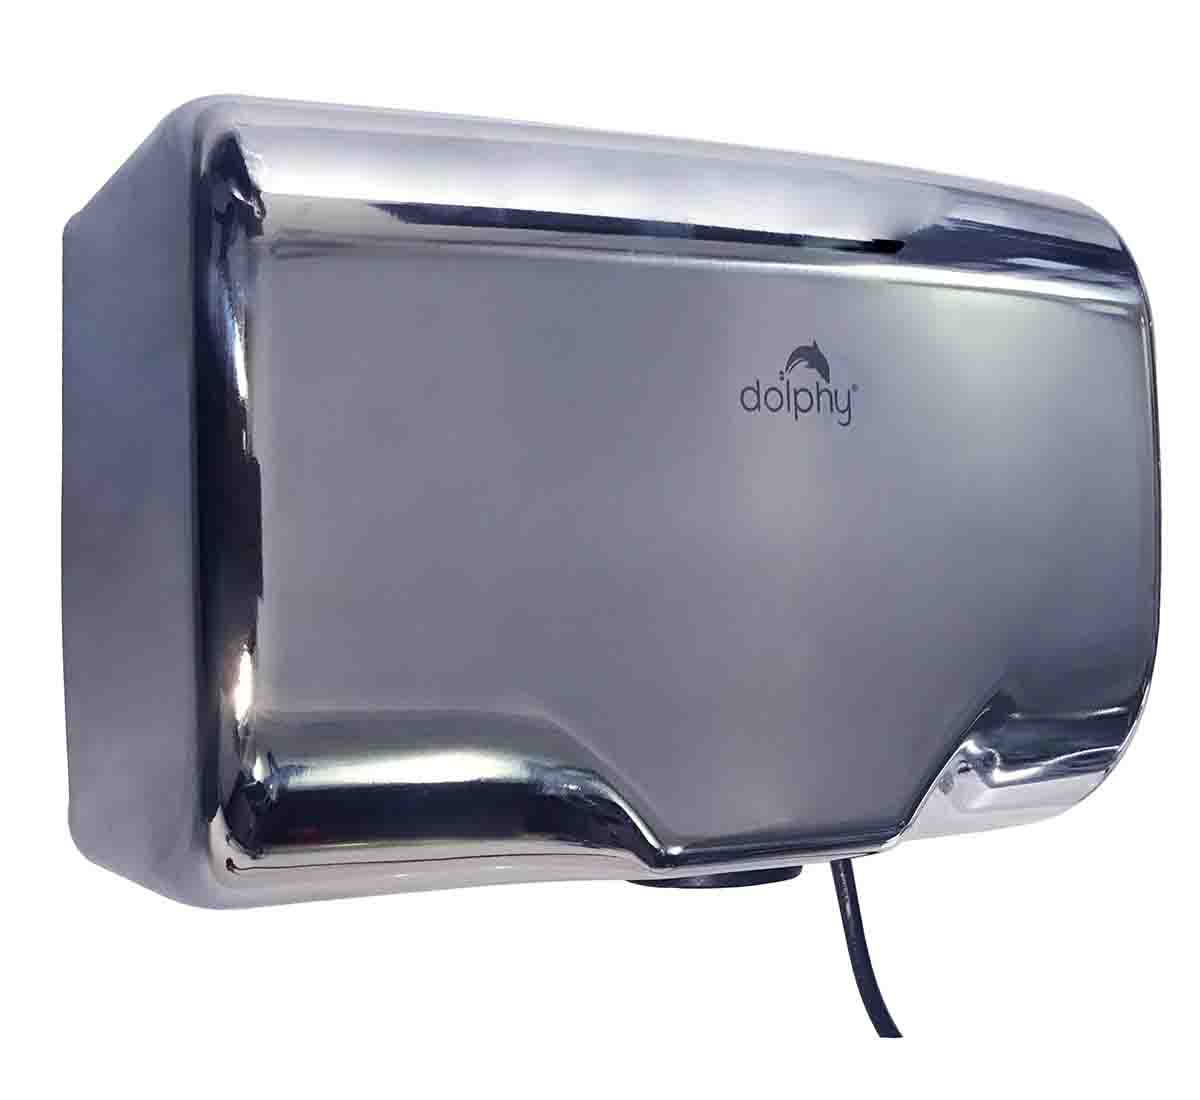 304 SS High Speed Compact Hand Dryer